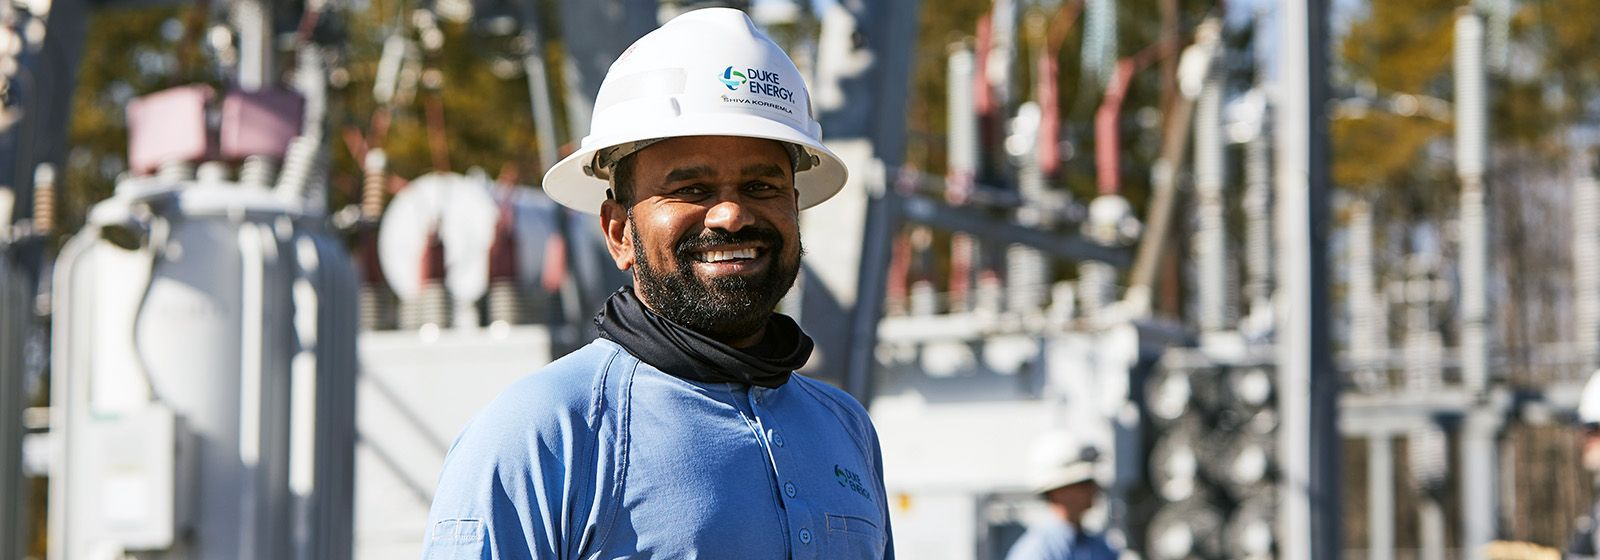 This engineer creates innovative digital tools for fellow utility workers